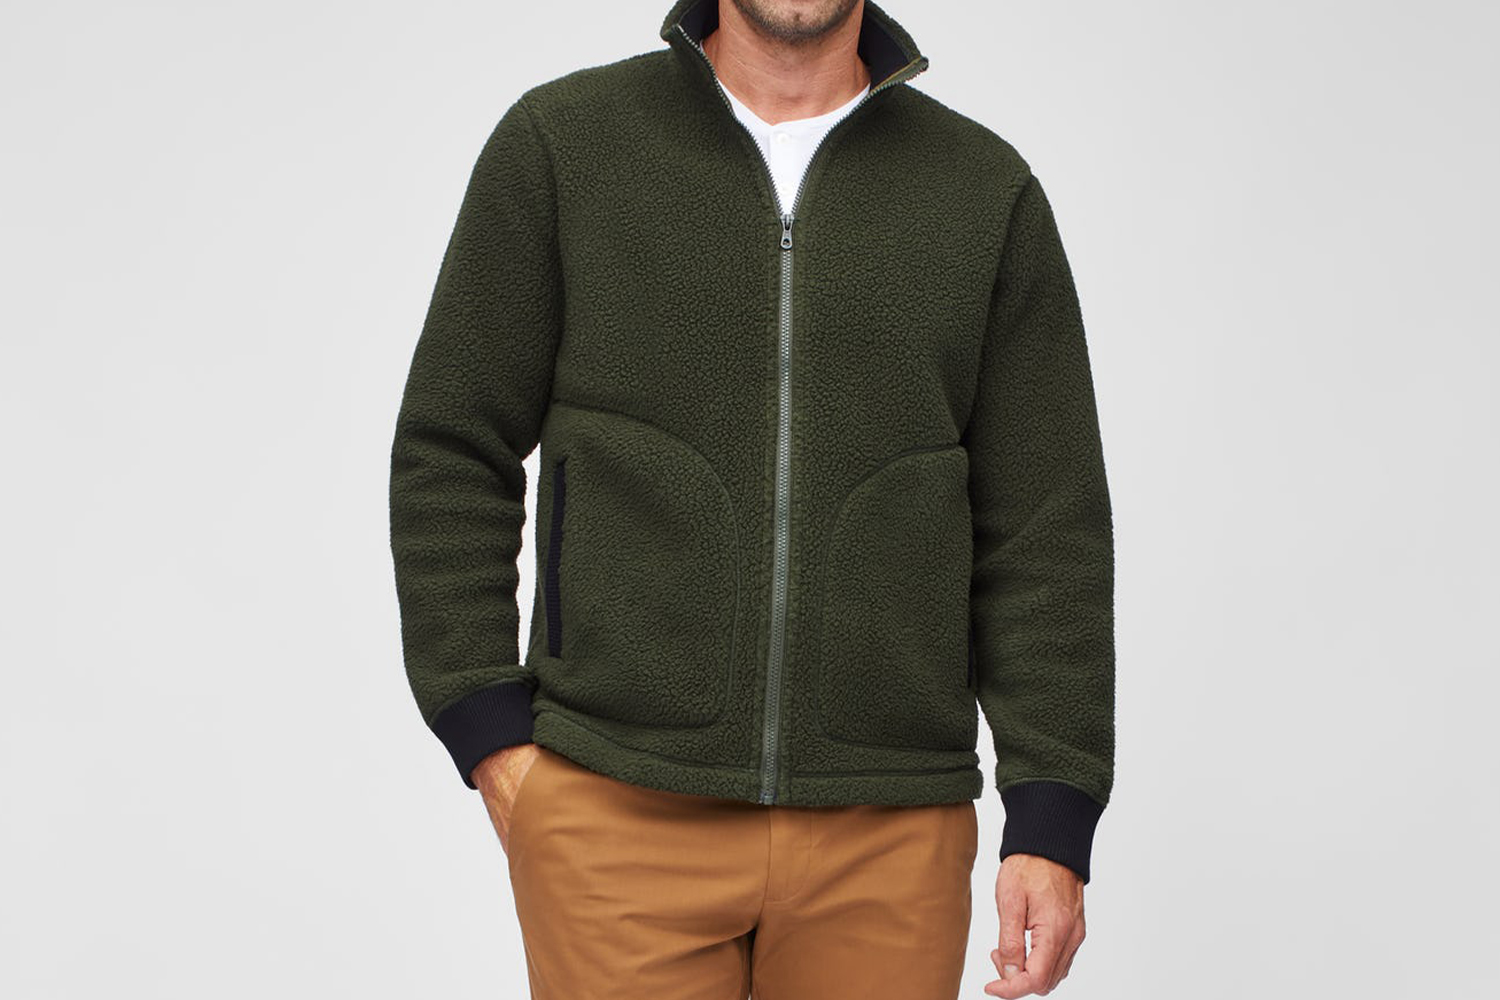 Deal: Take an Extra 40% Off New Sale Items at Bonobos